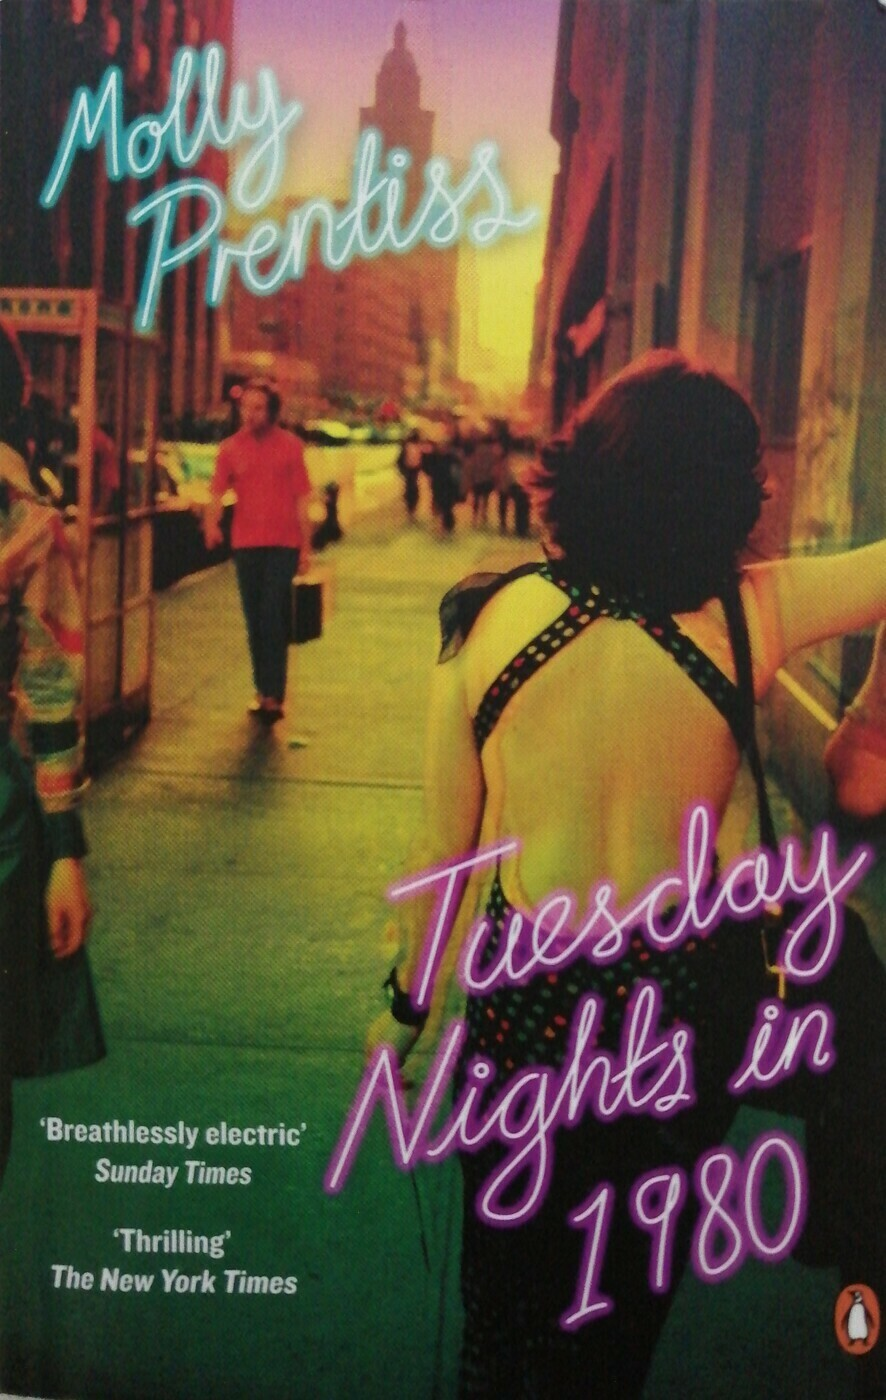 Tuesday Nights in 1980; Molly Prentiss